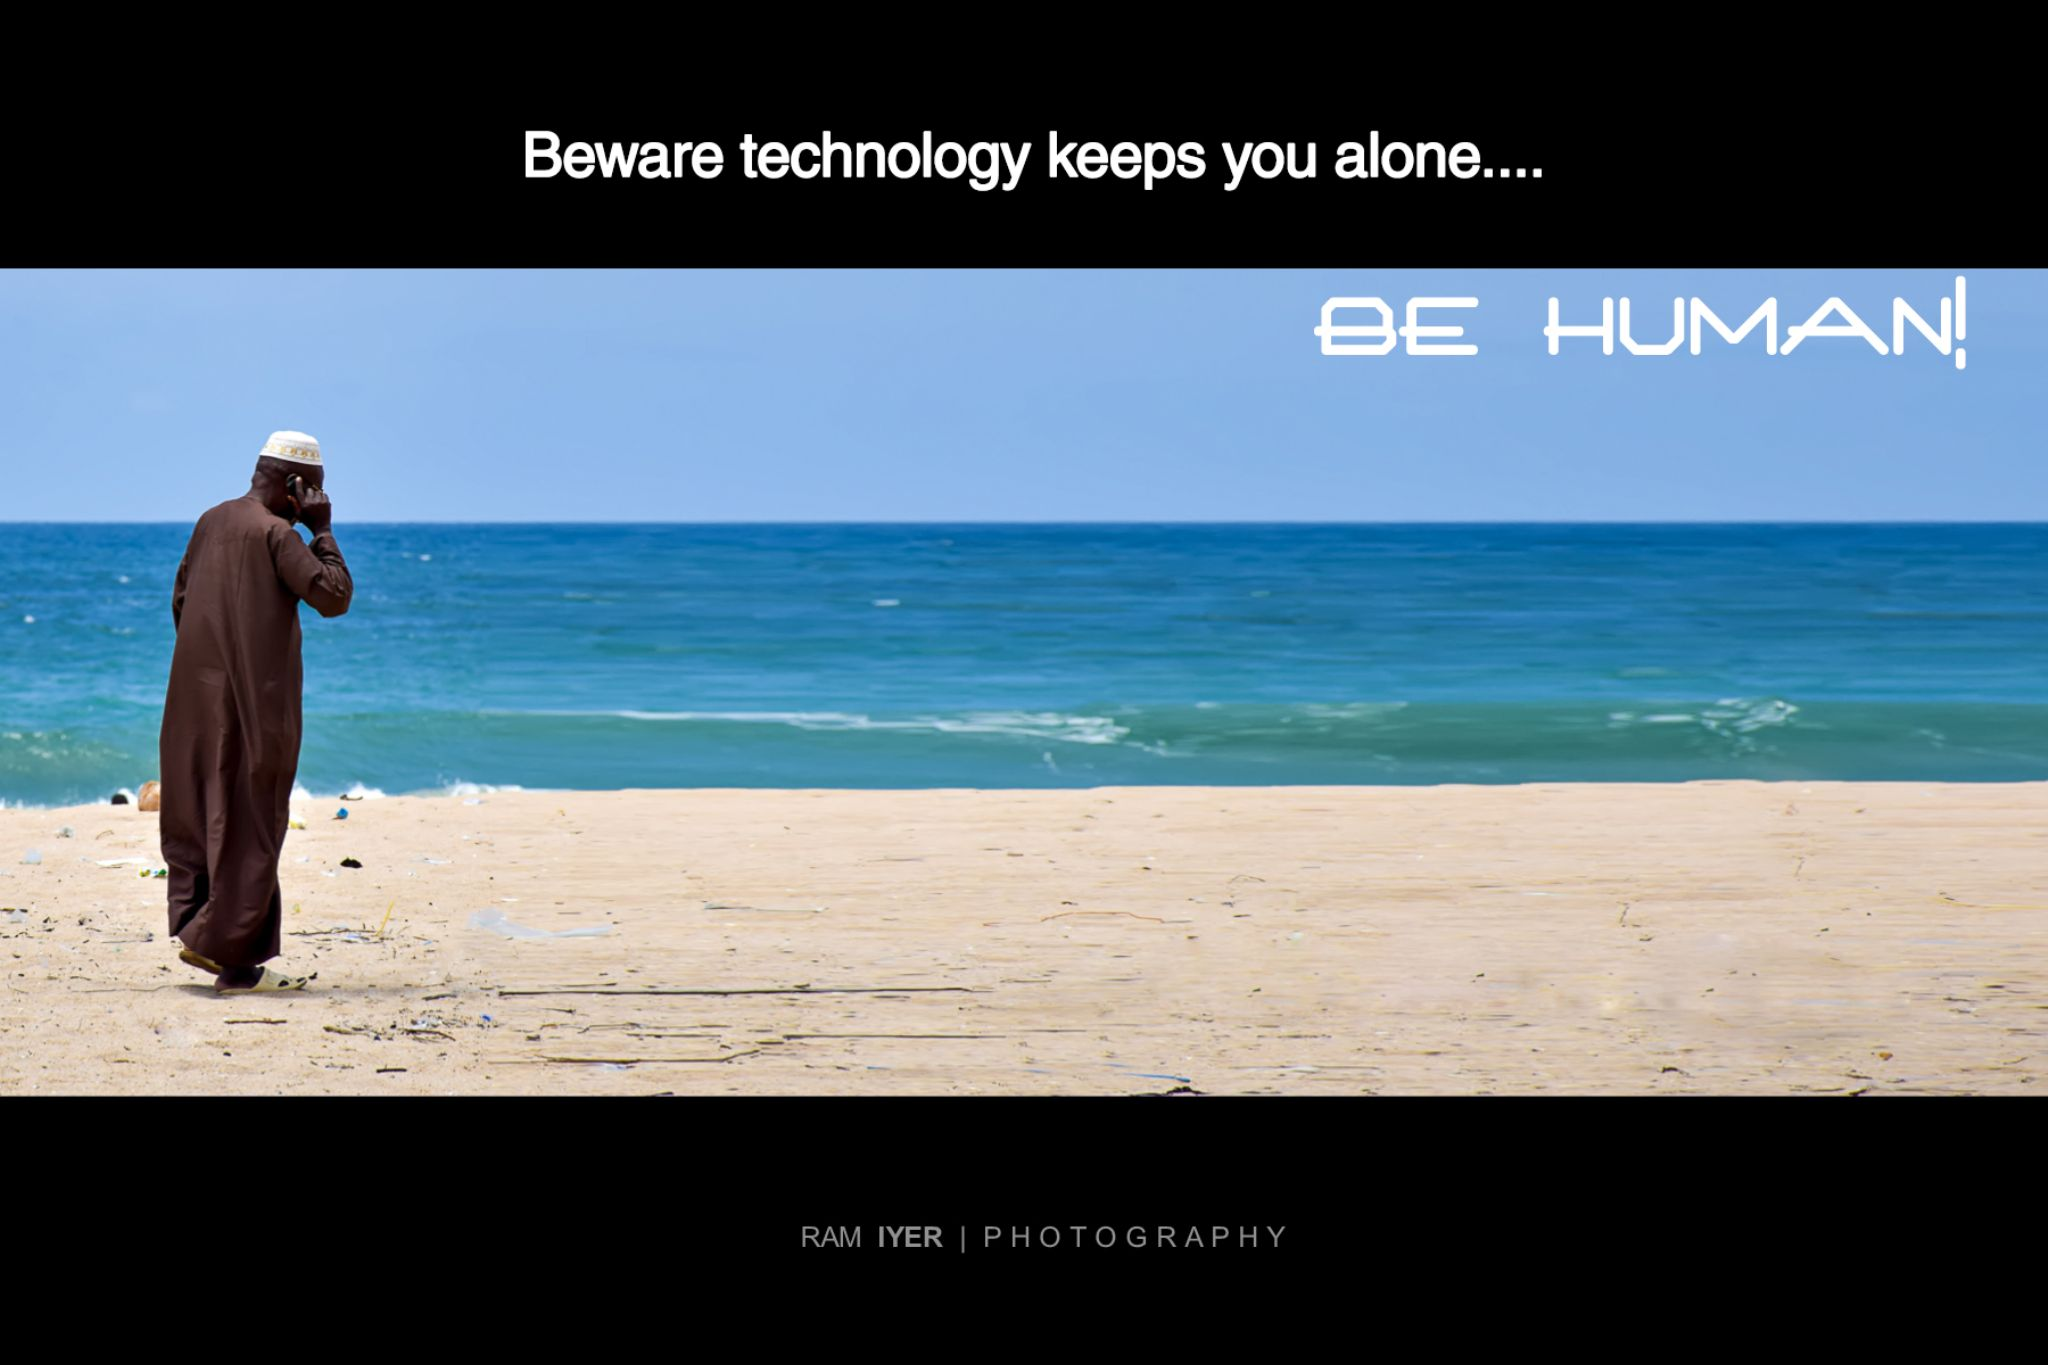 Be human! by Ram Iyer